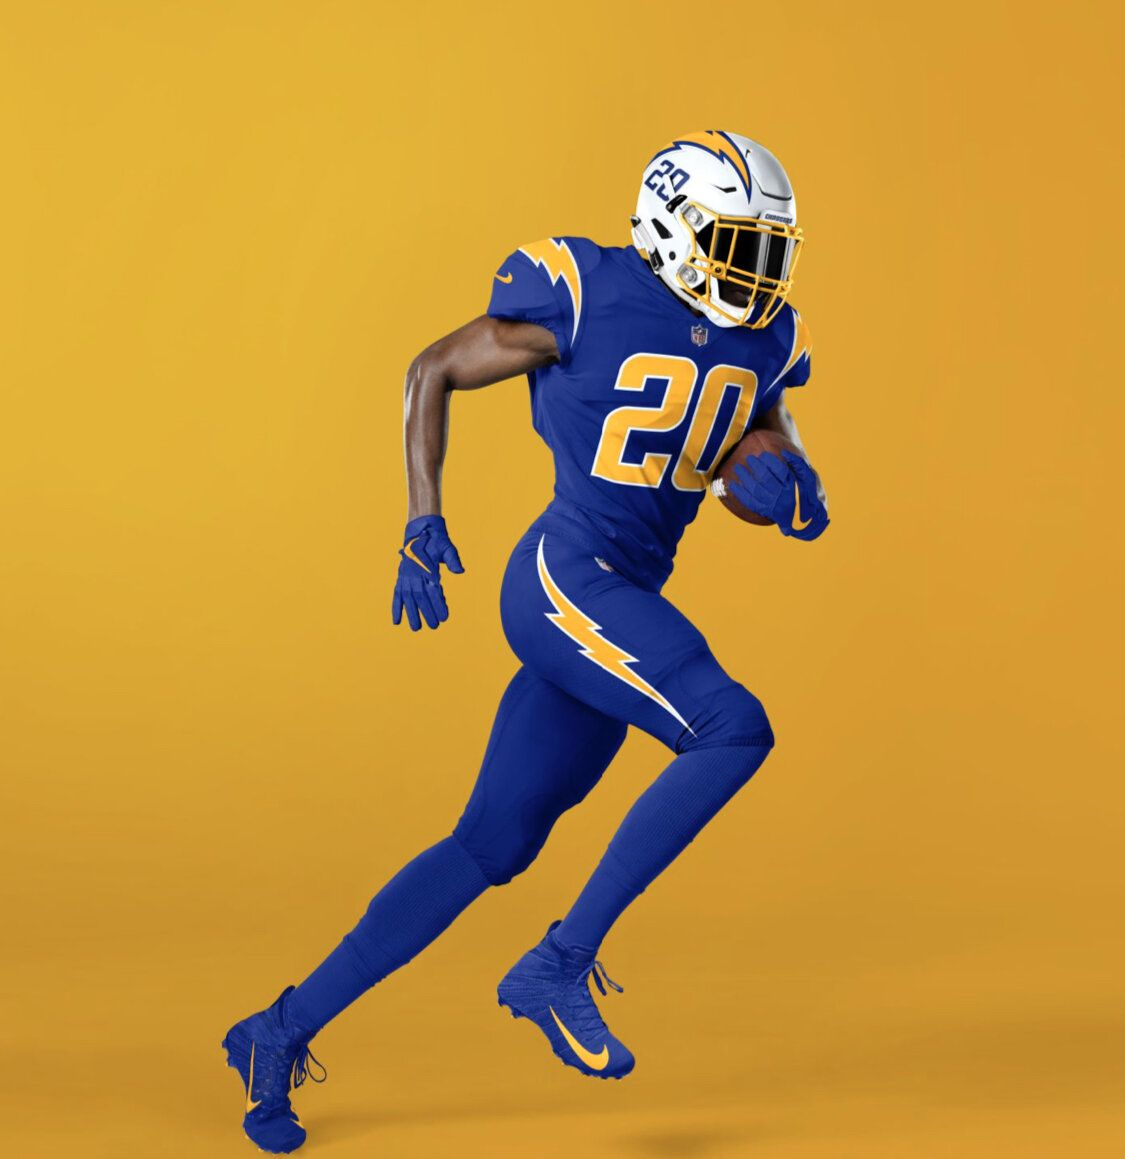 Los Angeles Chargers New Uniforms Uniswag In 2020 Los Angeles Chargers Color Rush Uniforms Rams New Uniforms